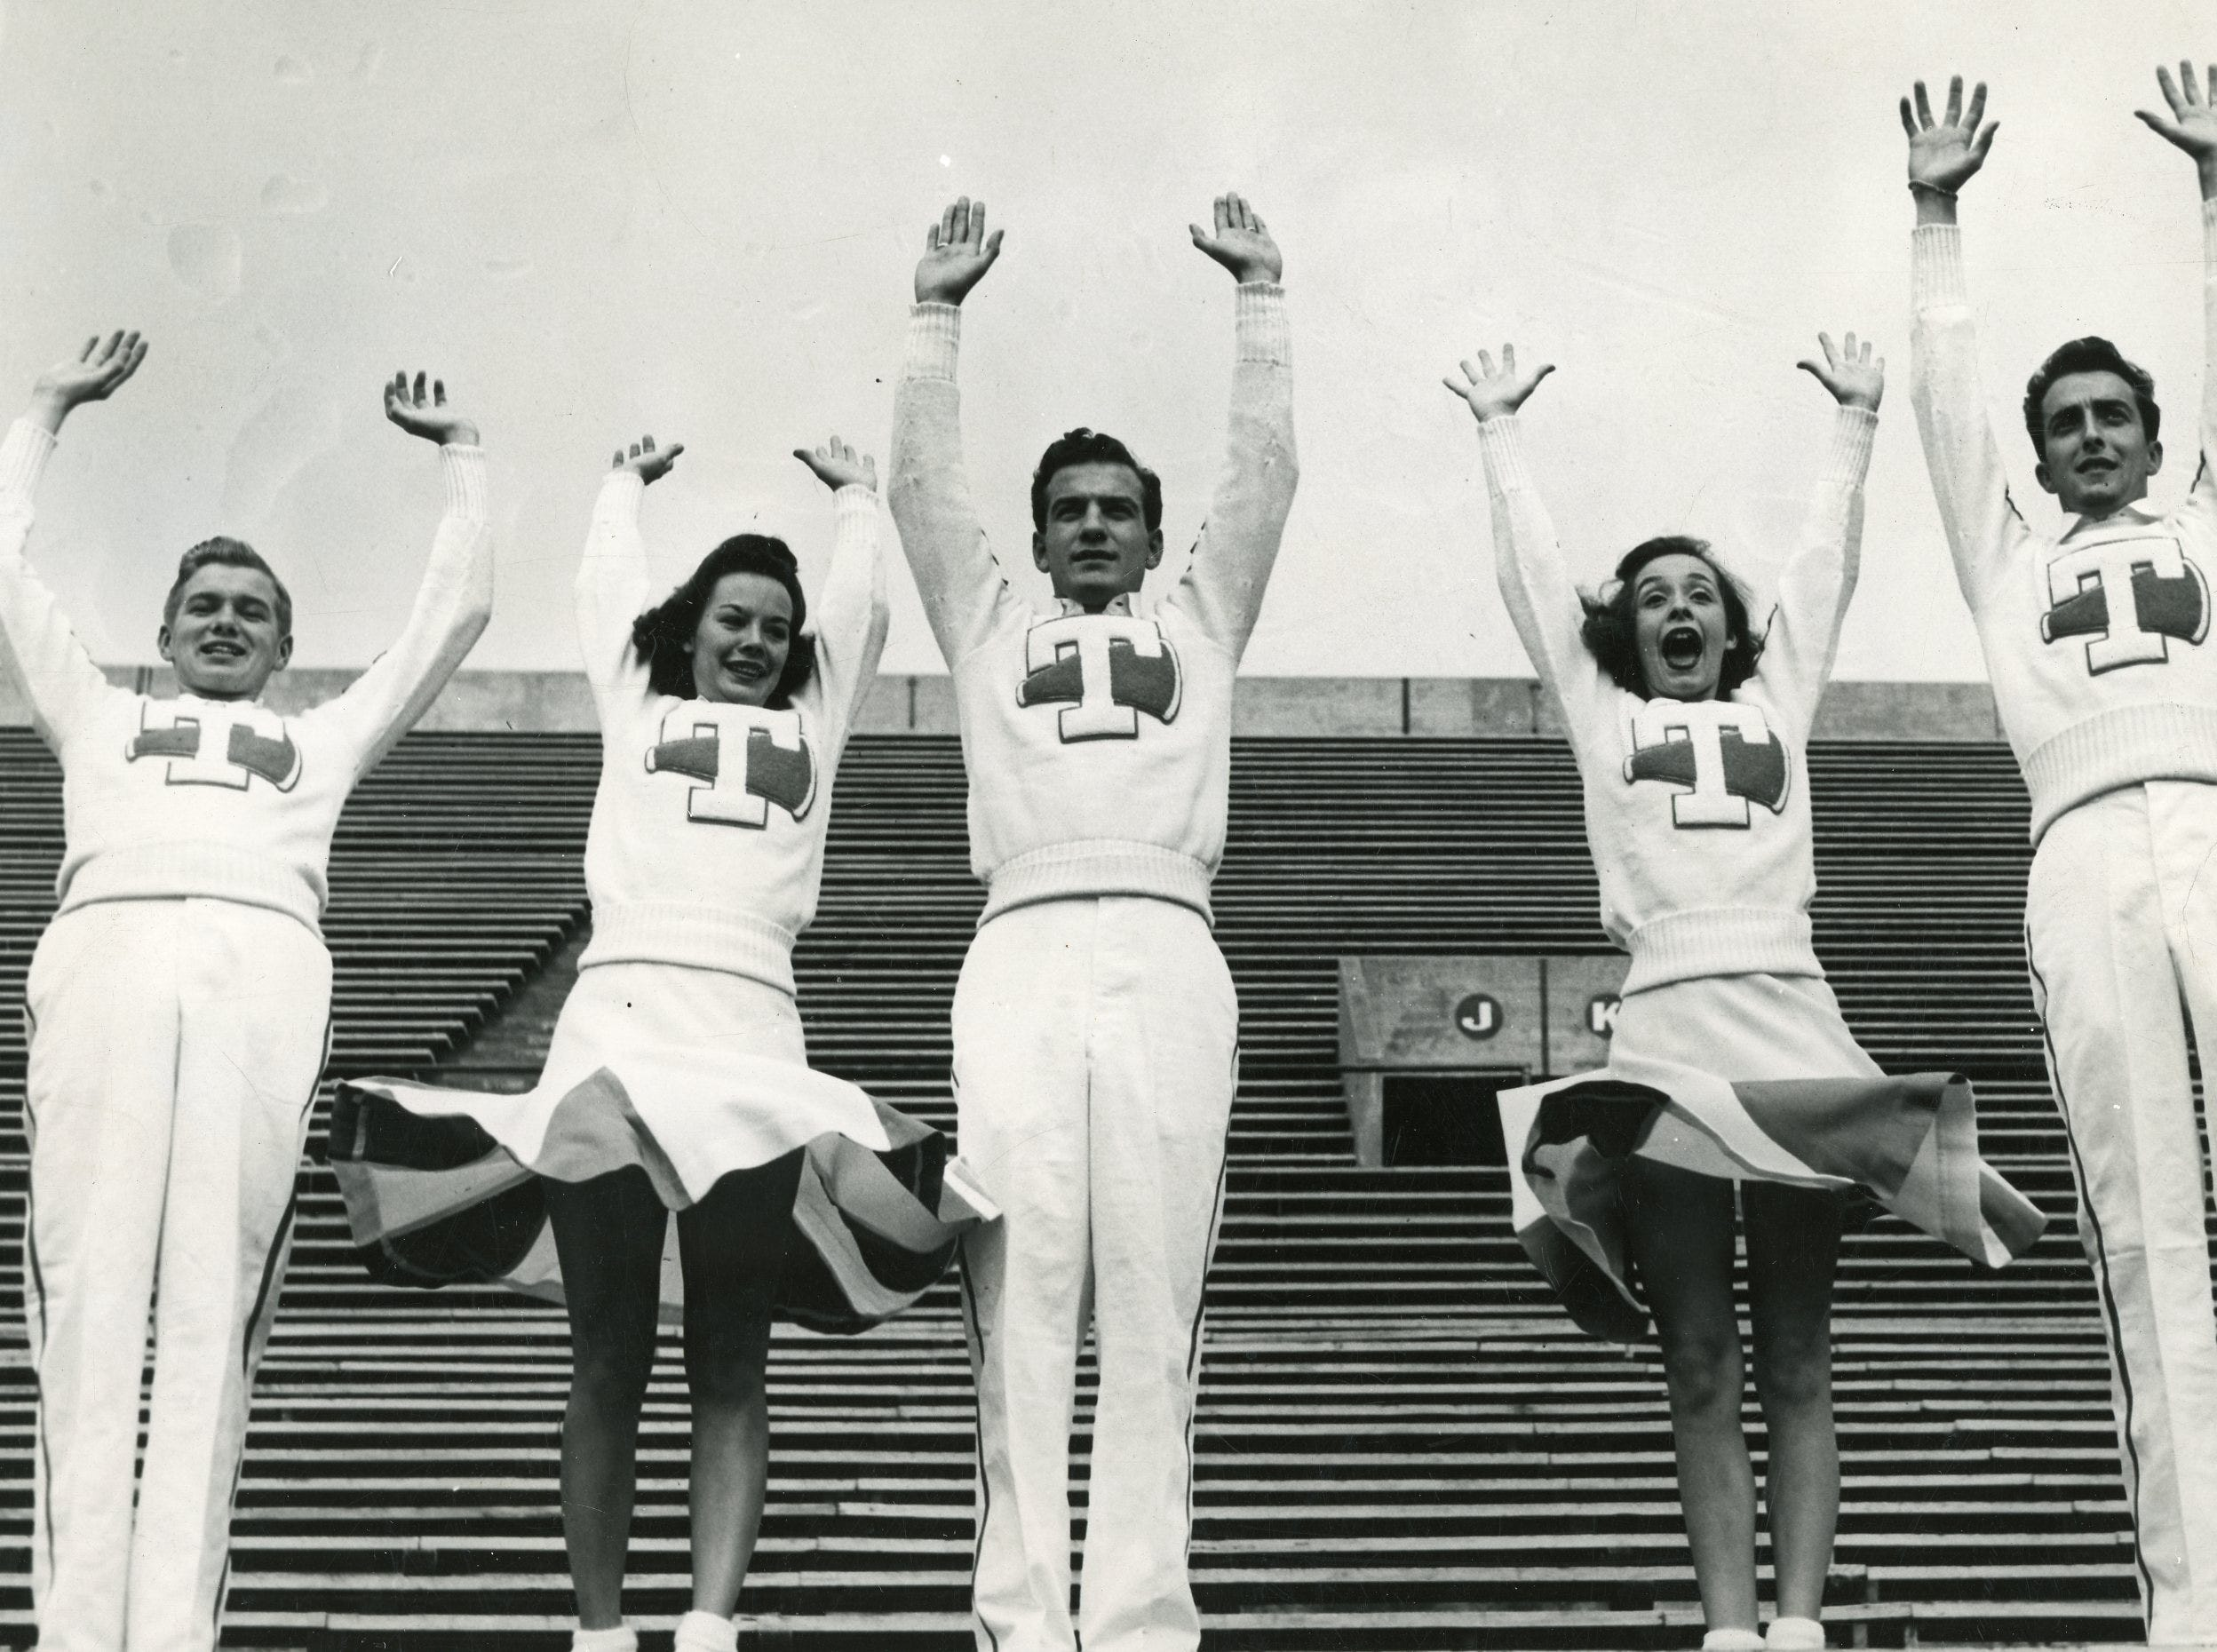 1946 UT cheerleaders John Sterchi, Sis McCullough, Charles Wolfenbarger, Mary Lee Ewell and Tandy Wilson.